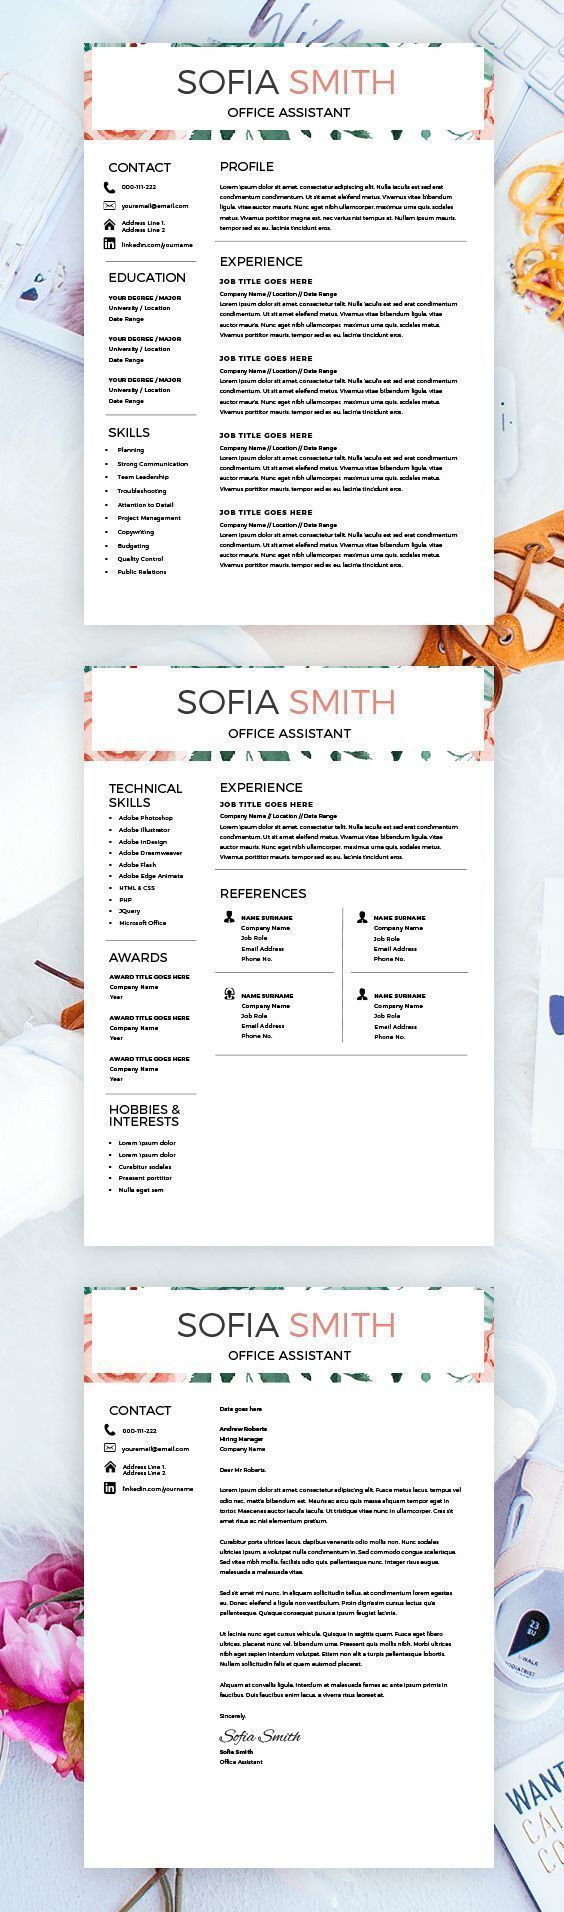 Resume for Female - CV design - Resume Download - MS Word Resume for Word - Professional Resume Template Mac - Instant Download